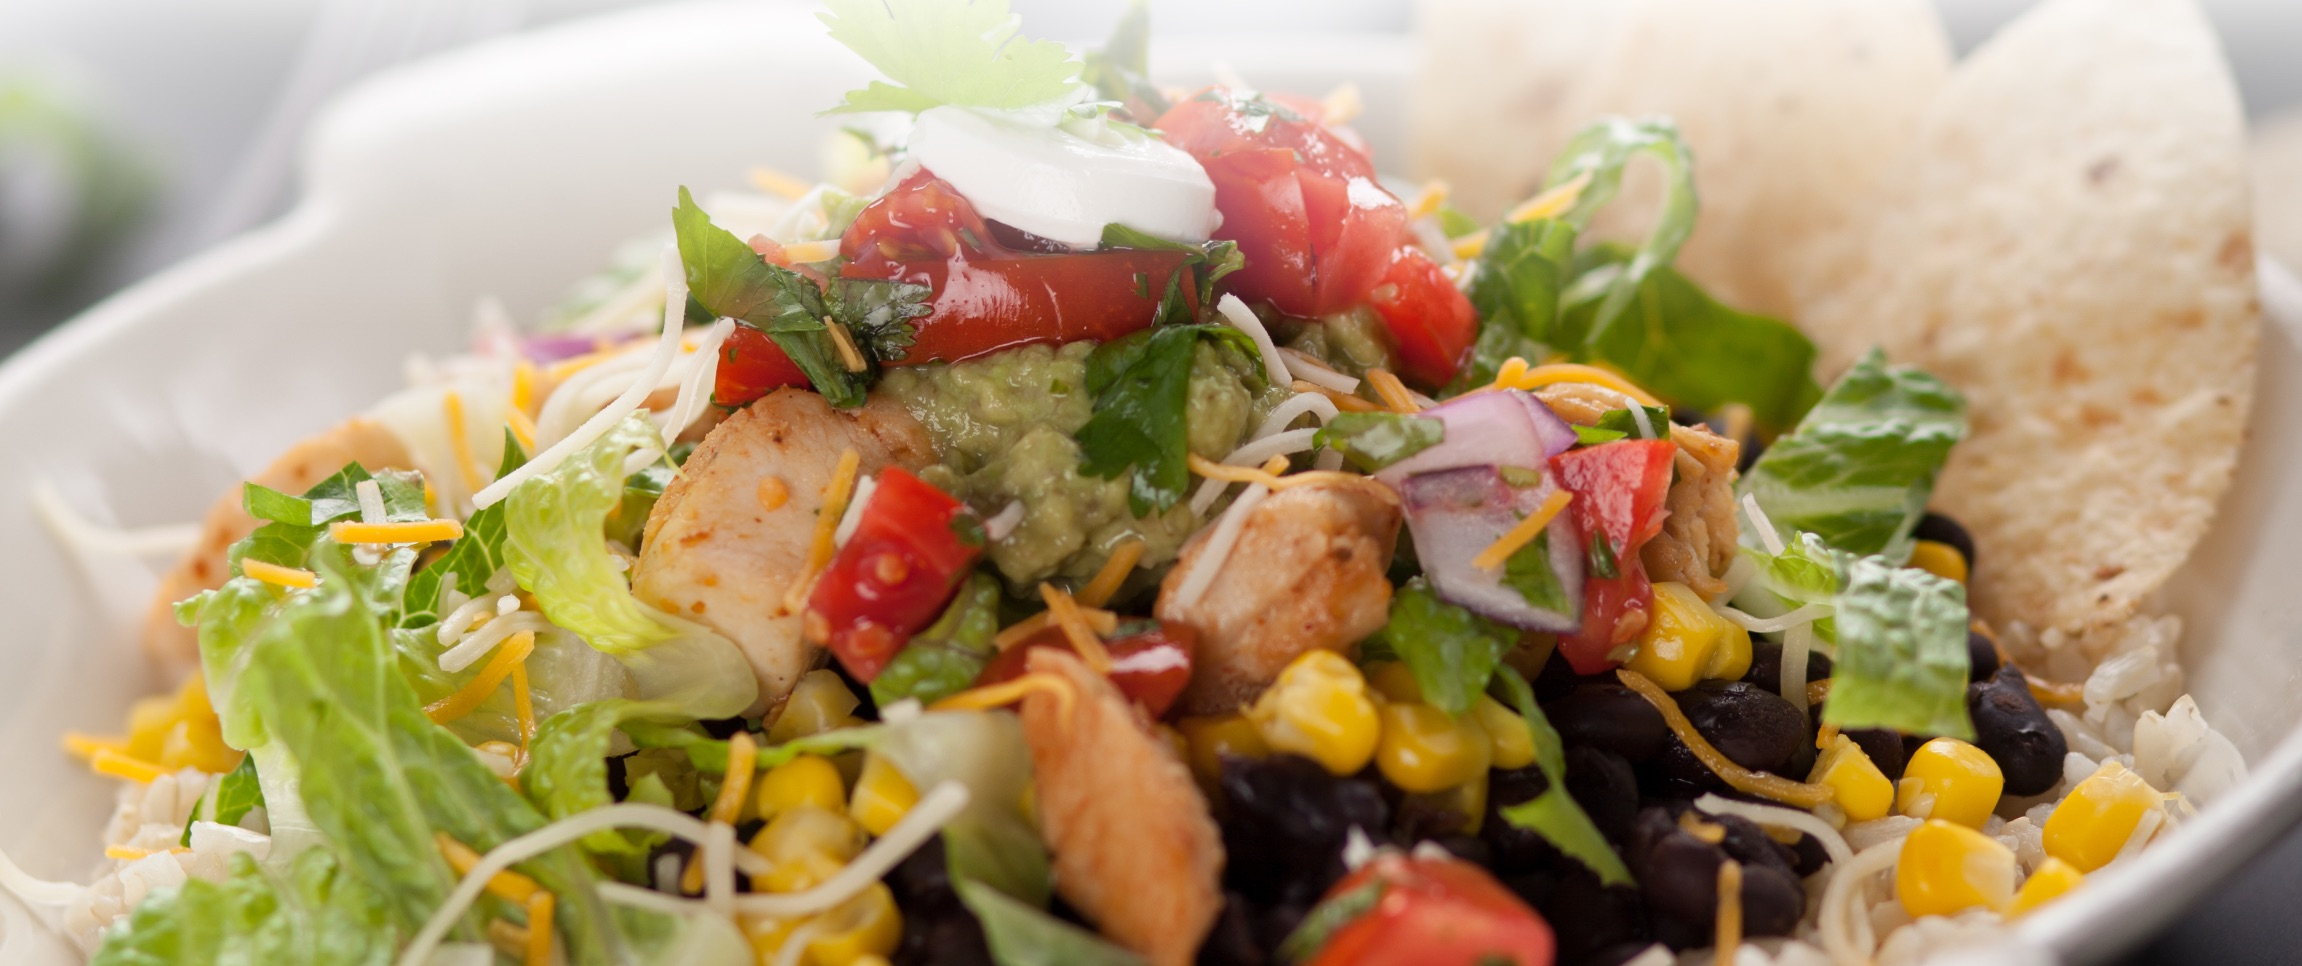 Southwest Style Salad with Tortilla Chips